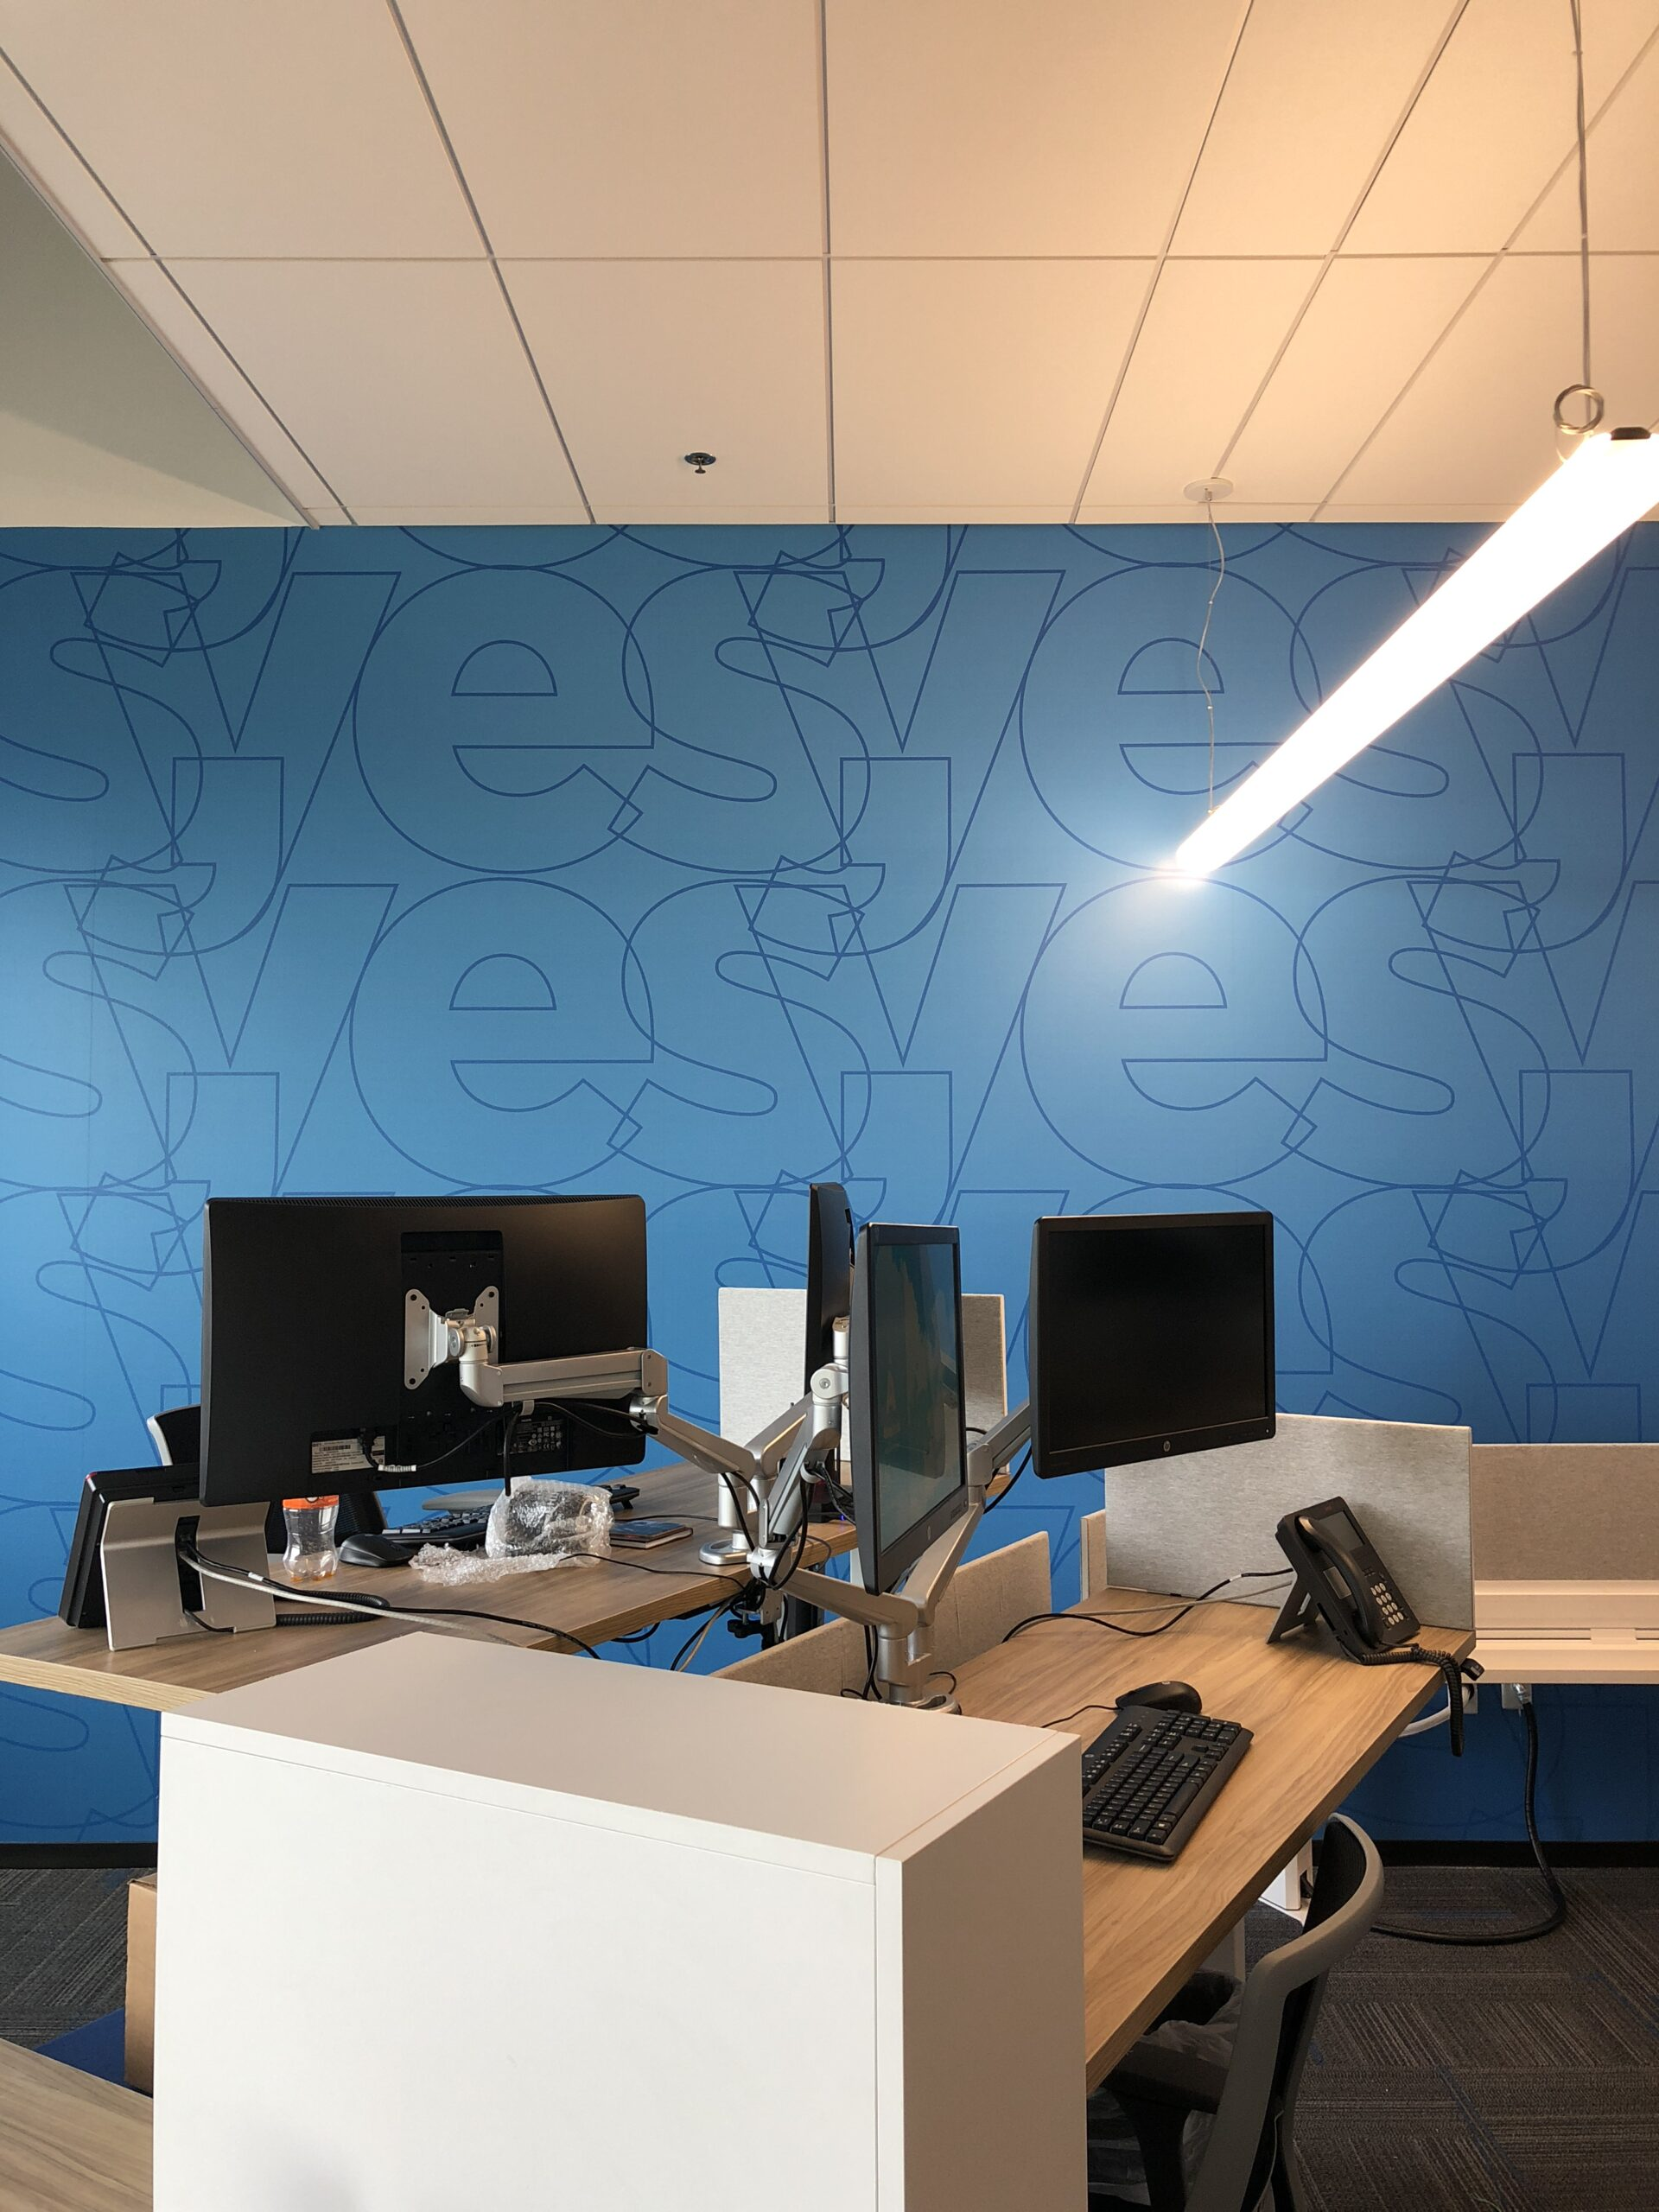 Forcade Bold Brand Culture Wall Graphics